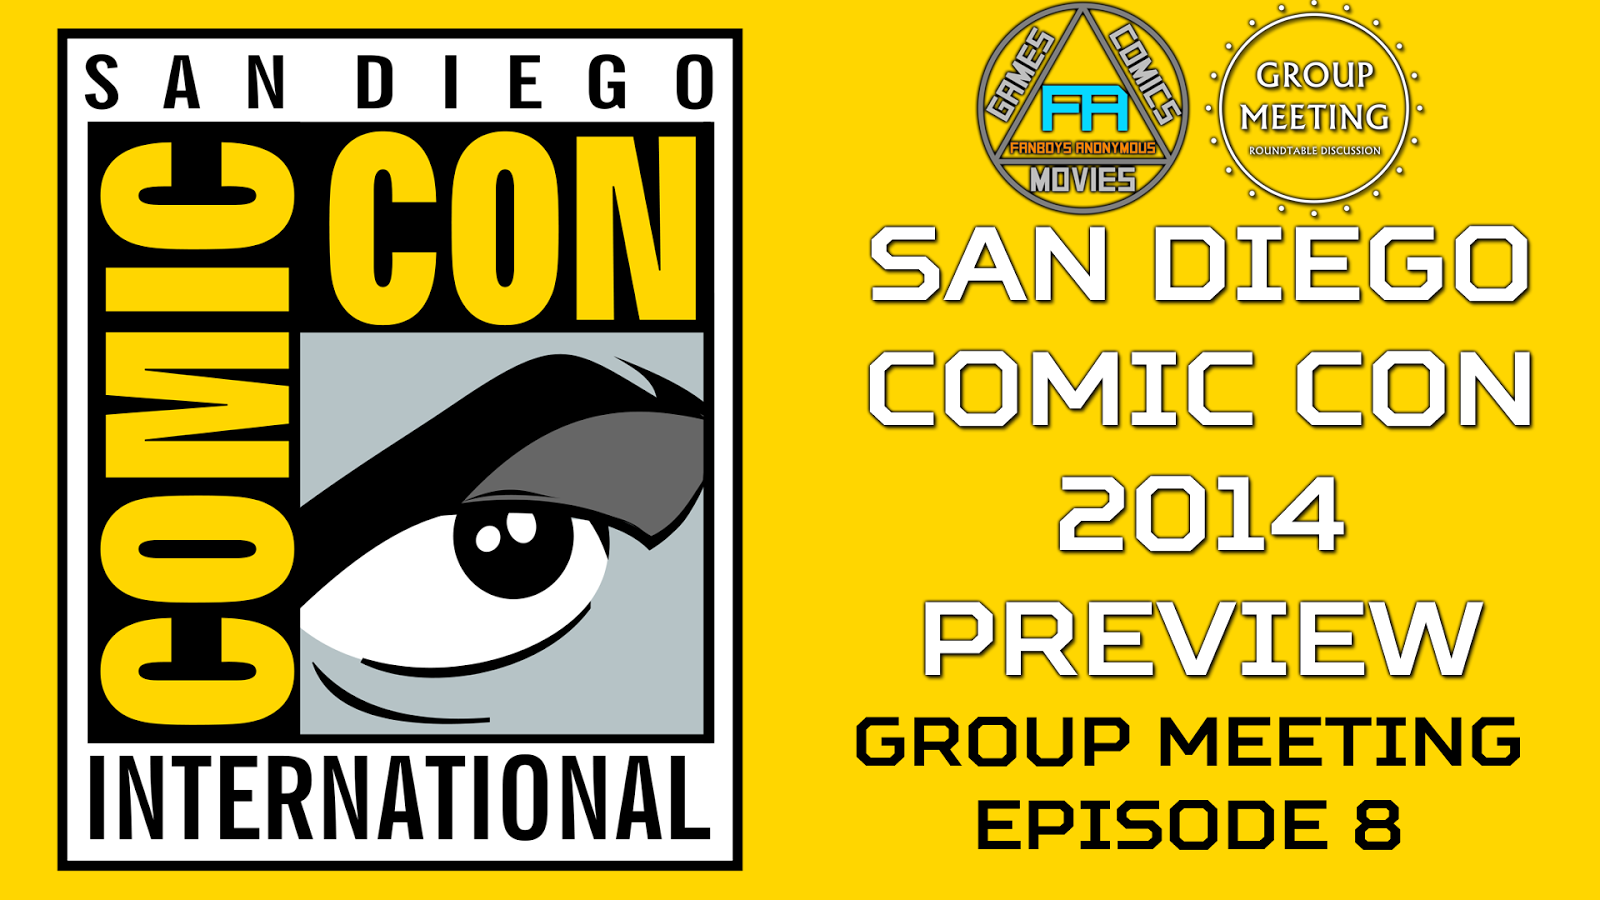 revealed at San Diego Comic Con 2014 videos online